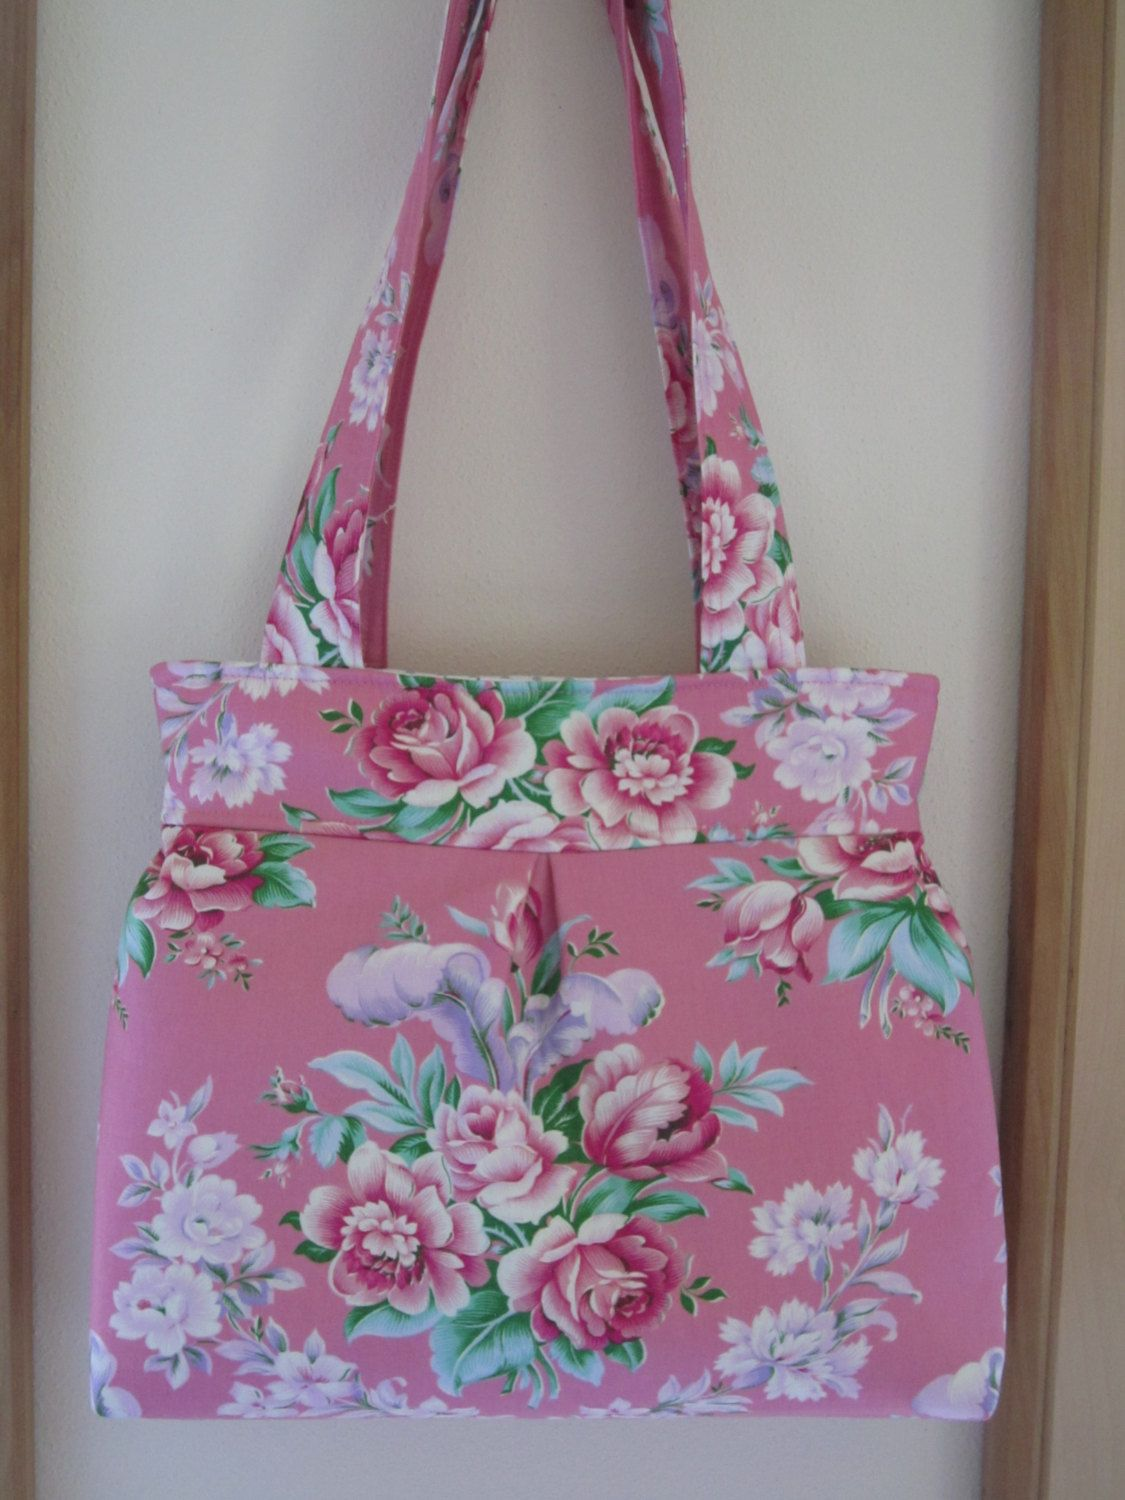 Handbag Purse  Shoulder Bag Netbook Tote Circa in Pink Floral Shabby Chic - pinned by pin4etsy.com